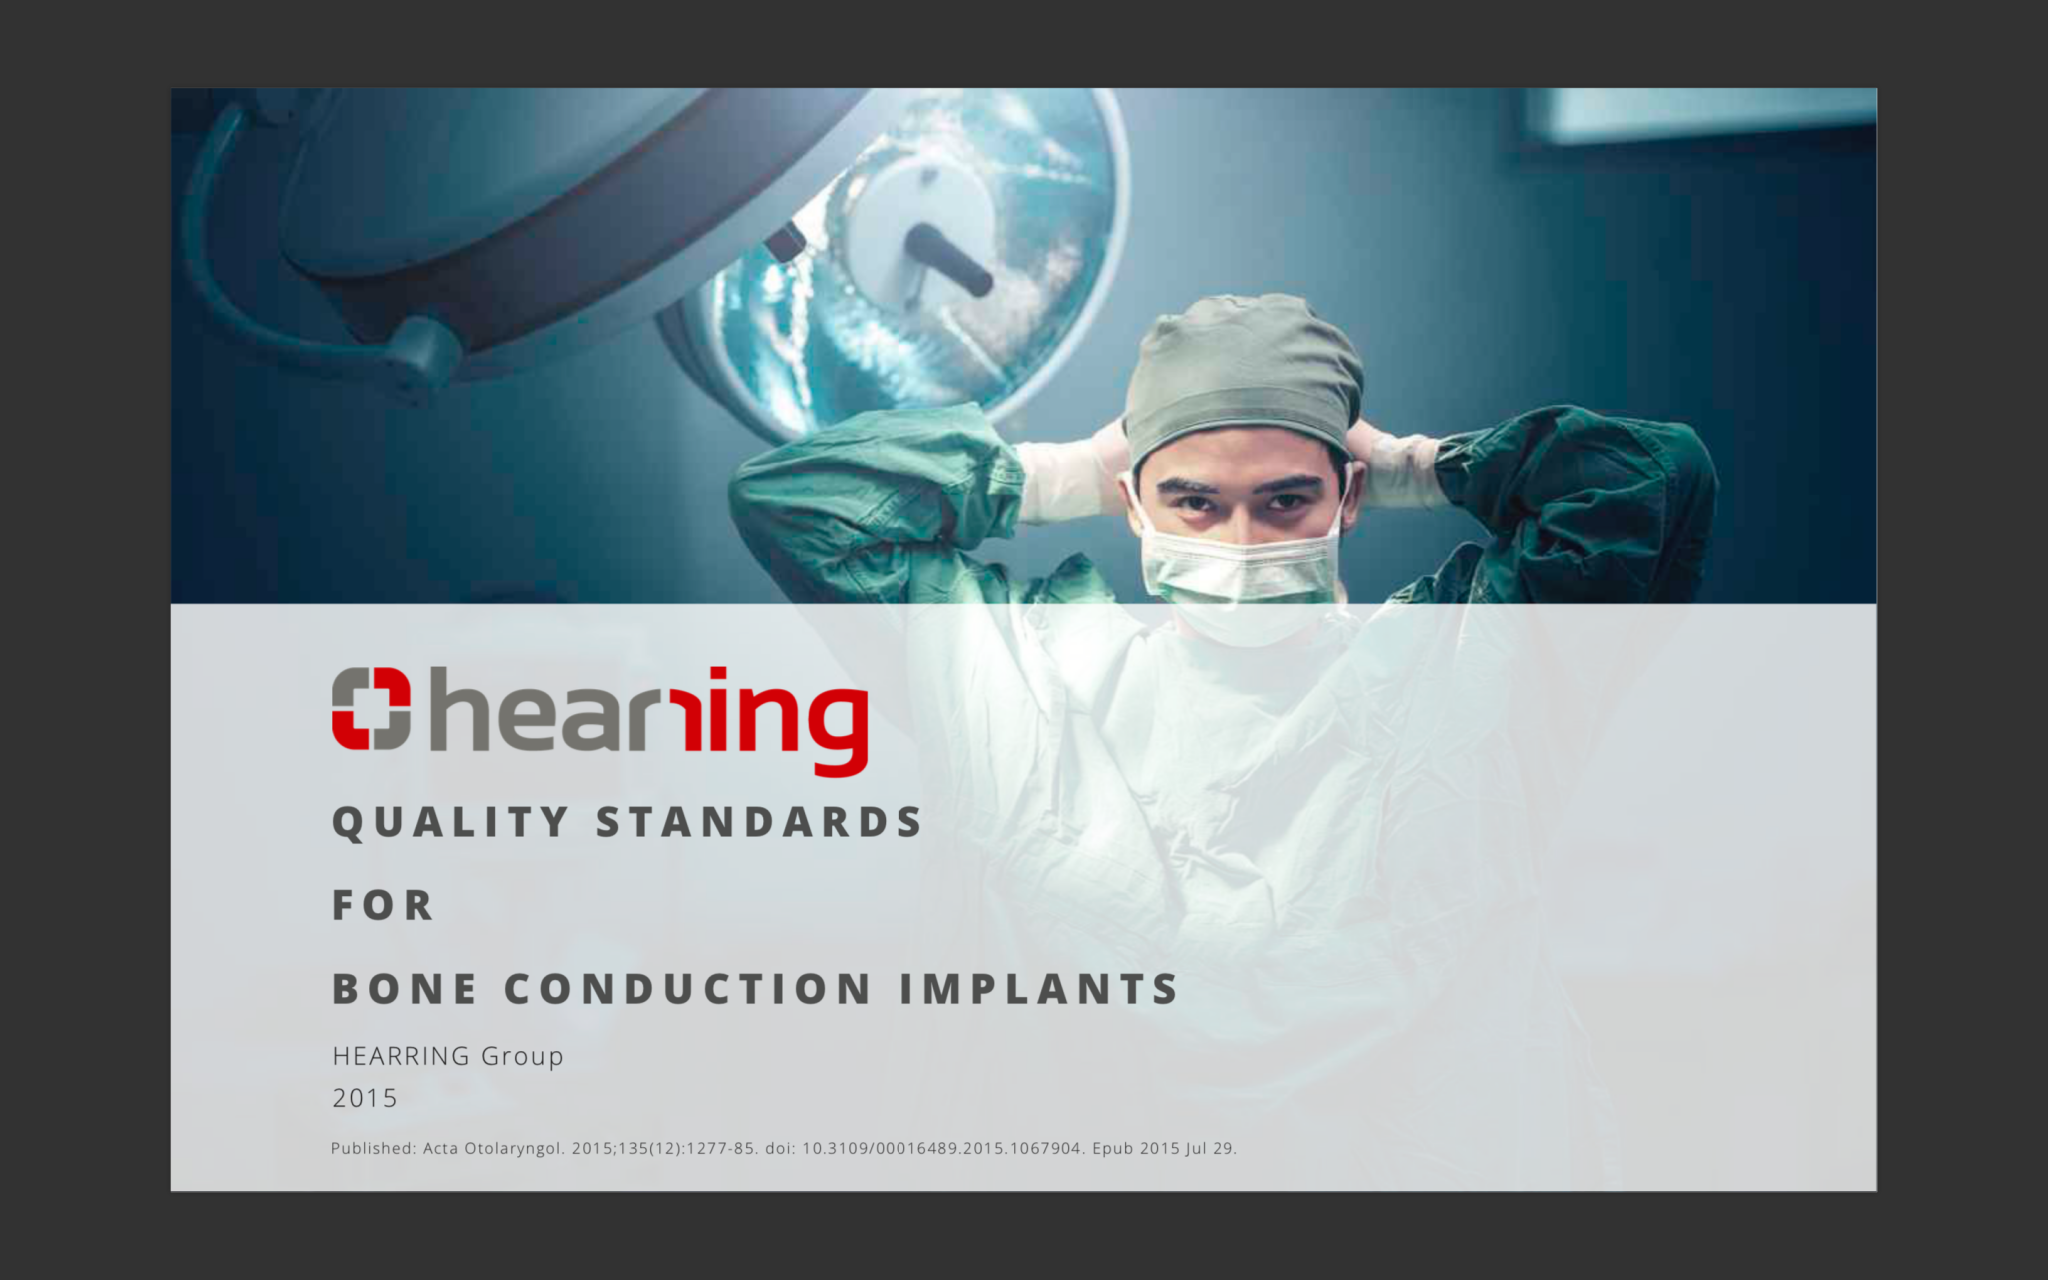 Bone Conduction Implants Quality Standards Hearring